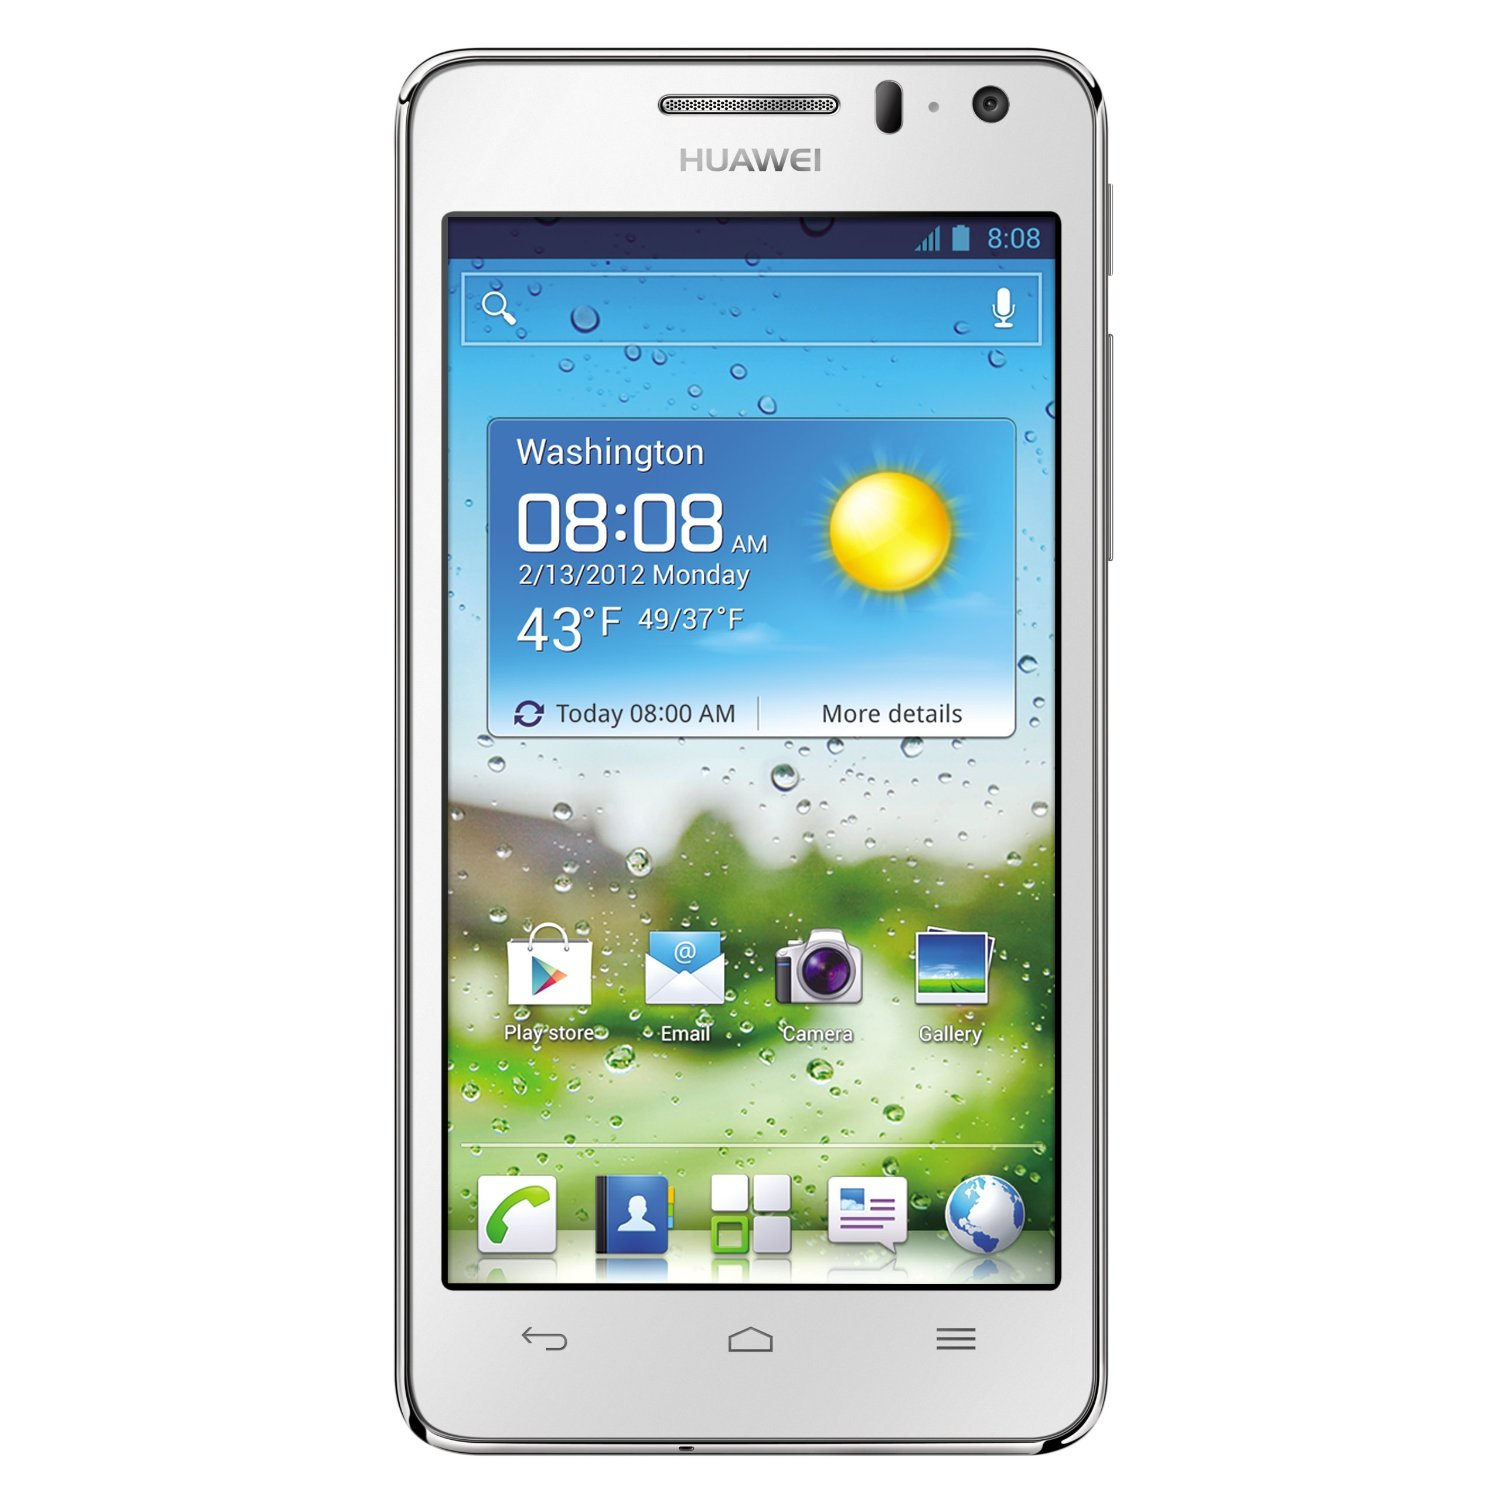 Huawei Ascend G615 Wit moreover Configuracion Apn Movistar Mexico likewise 72564 besides Tecno Spark K7 furthermore Index. on samsung galaxy 3g